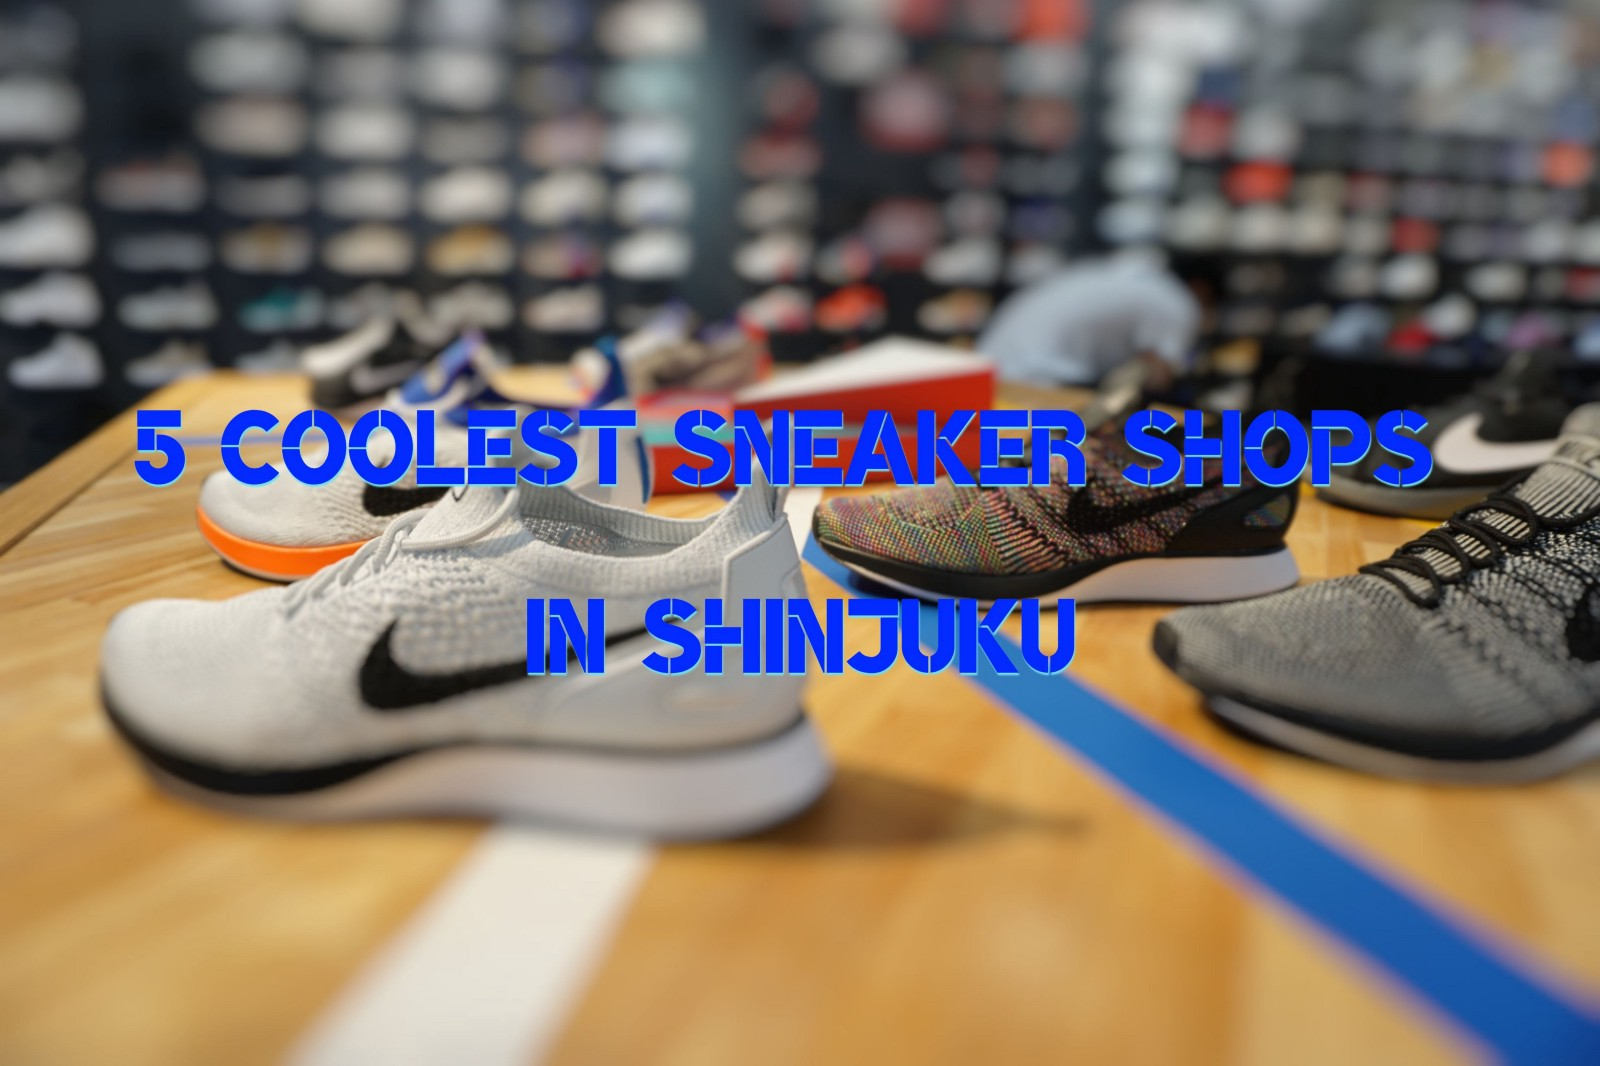 85c6d9186c6 5 Coolest Sneaker Shops in Shinjuku - Japan Web Magazine